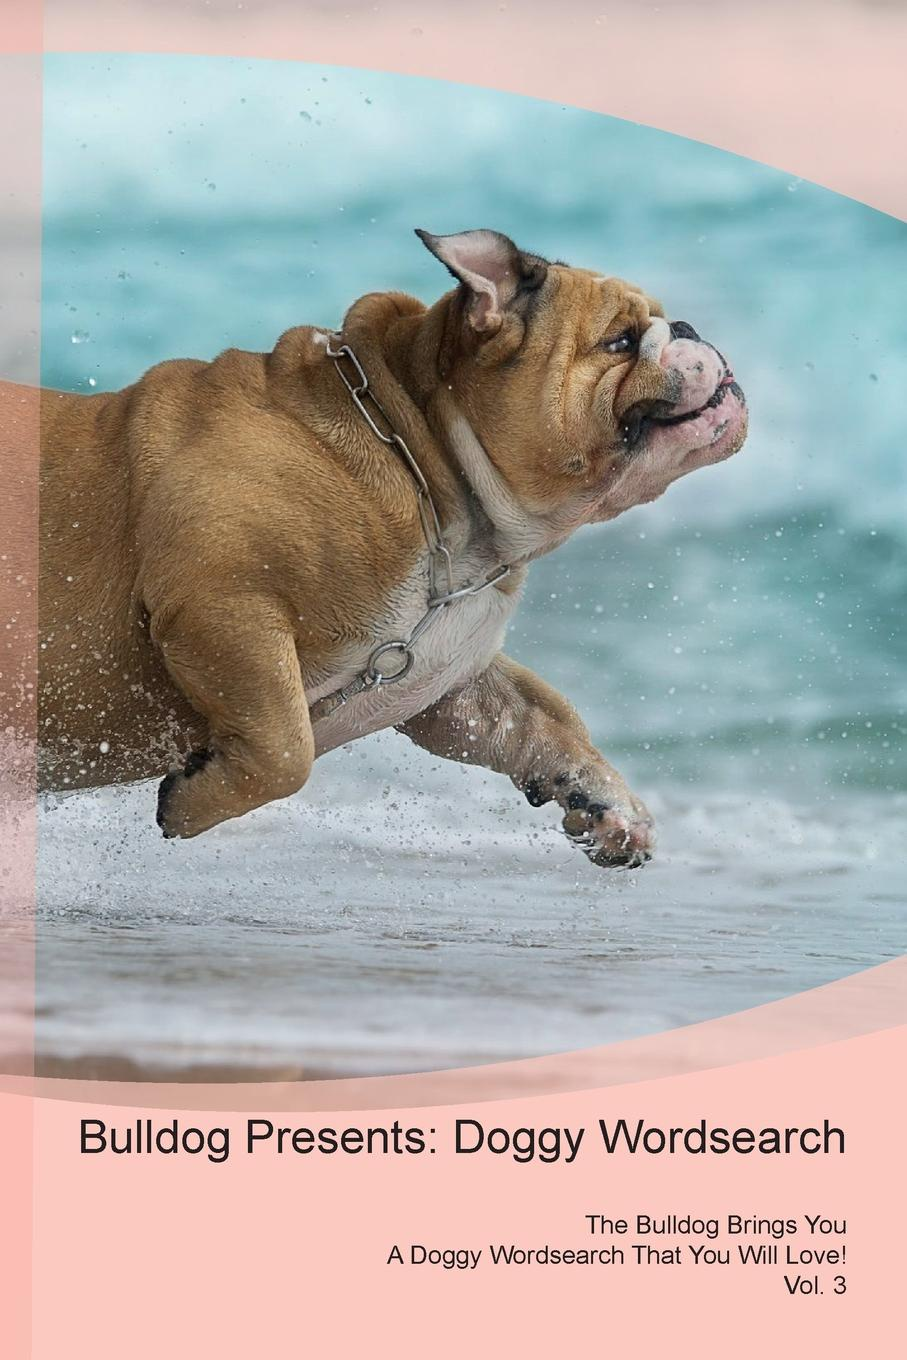 Doggy Puzzles Bulldog Presents. Wordsearch The Brings You A That Will Love! Vol. 3